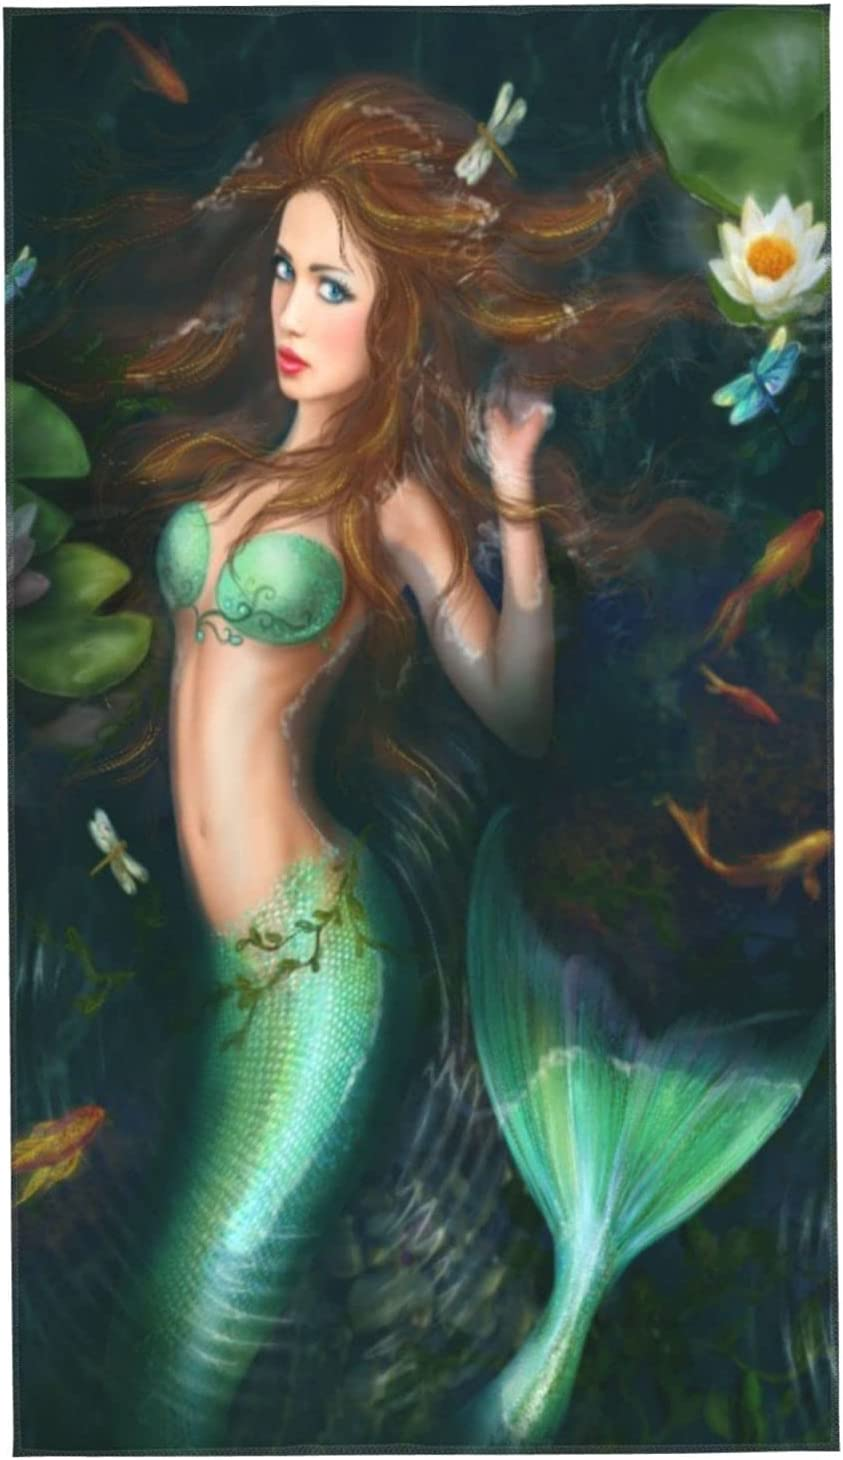 KENADVI Now free shipping Hand Towels Ocean Max 82% OFF Fantasy and Water Lily Dragonfly Girl